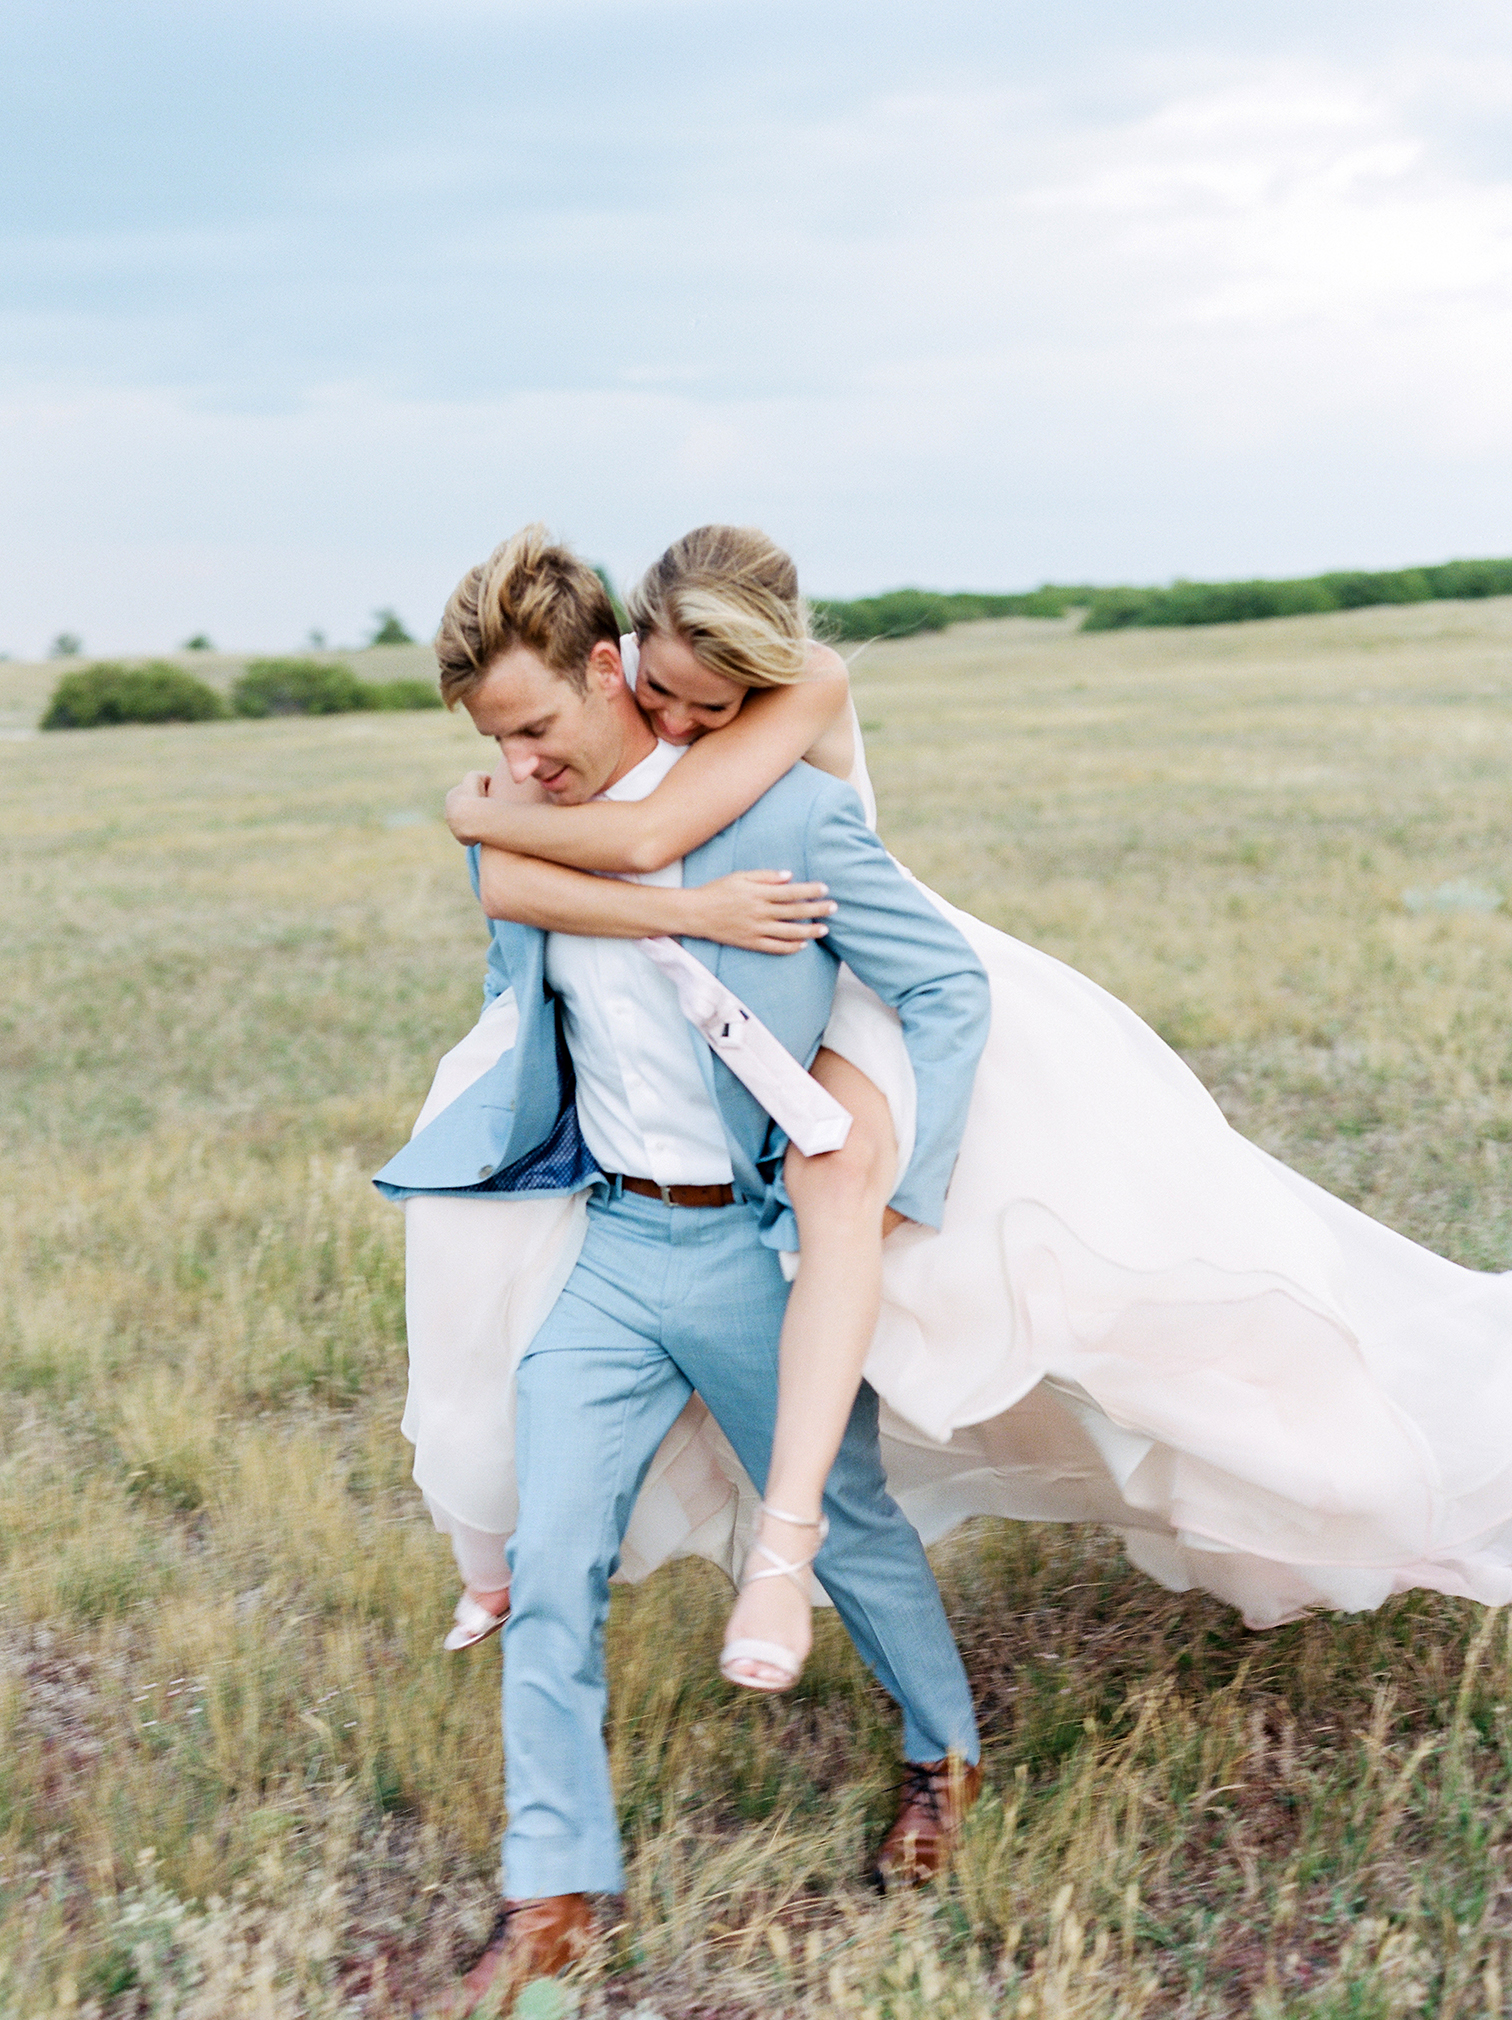 Wedding Photographers Colorado, Best Photography, Denver Wedding Photos, Groom Carrying Bride in Mountains, Fine Art film Photographers in Colorado